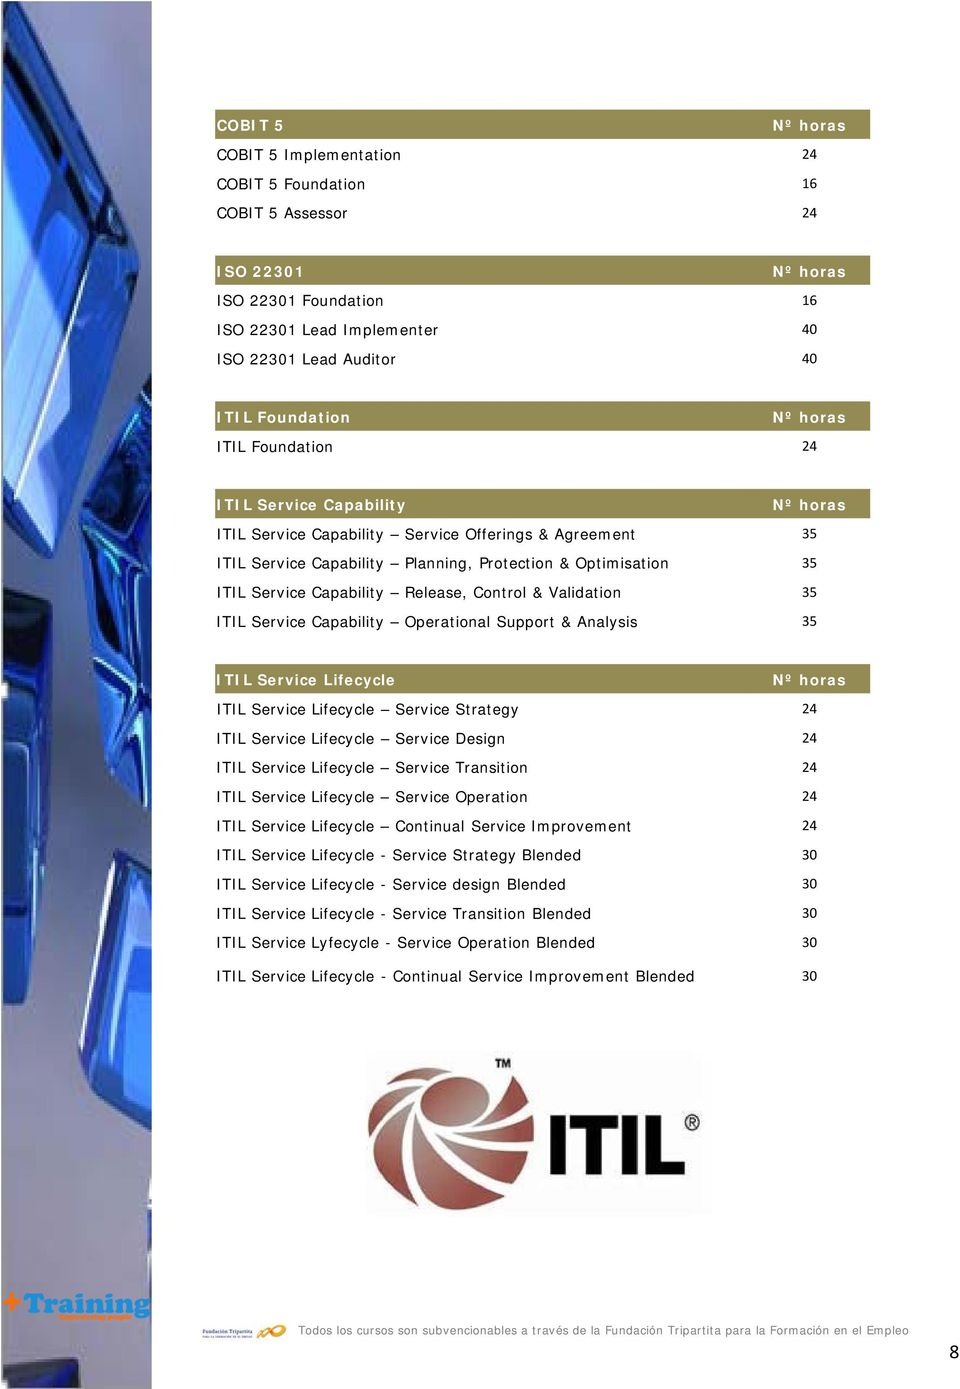 Validation 35 ITIL Service Capability Operational Support & Analysis 35 ITIL Service Lifecycle ITIL Service Lifecycle Service Strategy 24 ITIL Service Lifecycle Service Design 24 ITIL Service